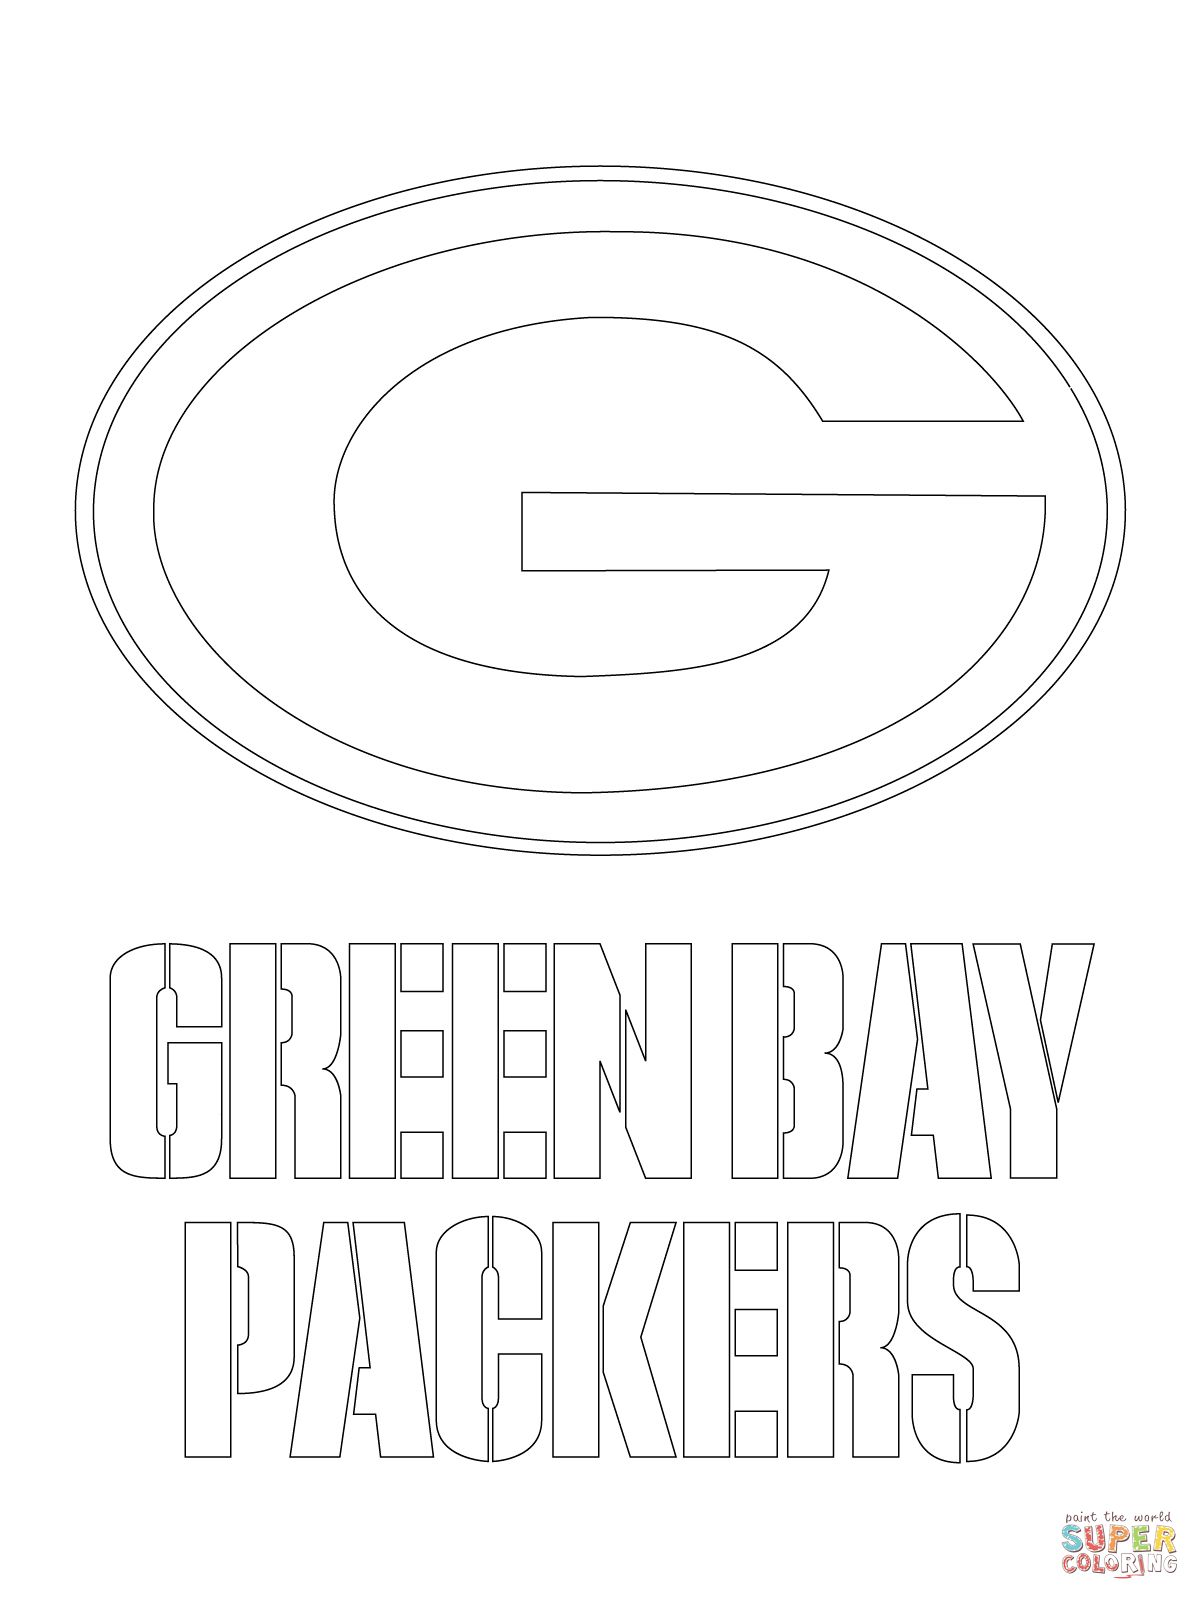 Green Bay Packers Logo Coloring Page Supercoloring Com Green Bay Packers Logo Green Bay Packers Football Coloring Pages